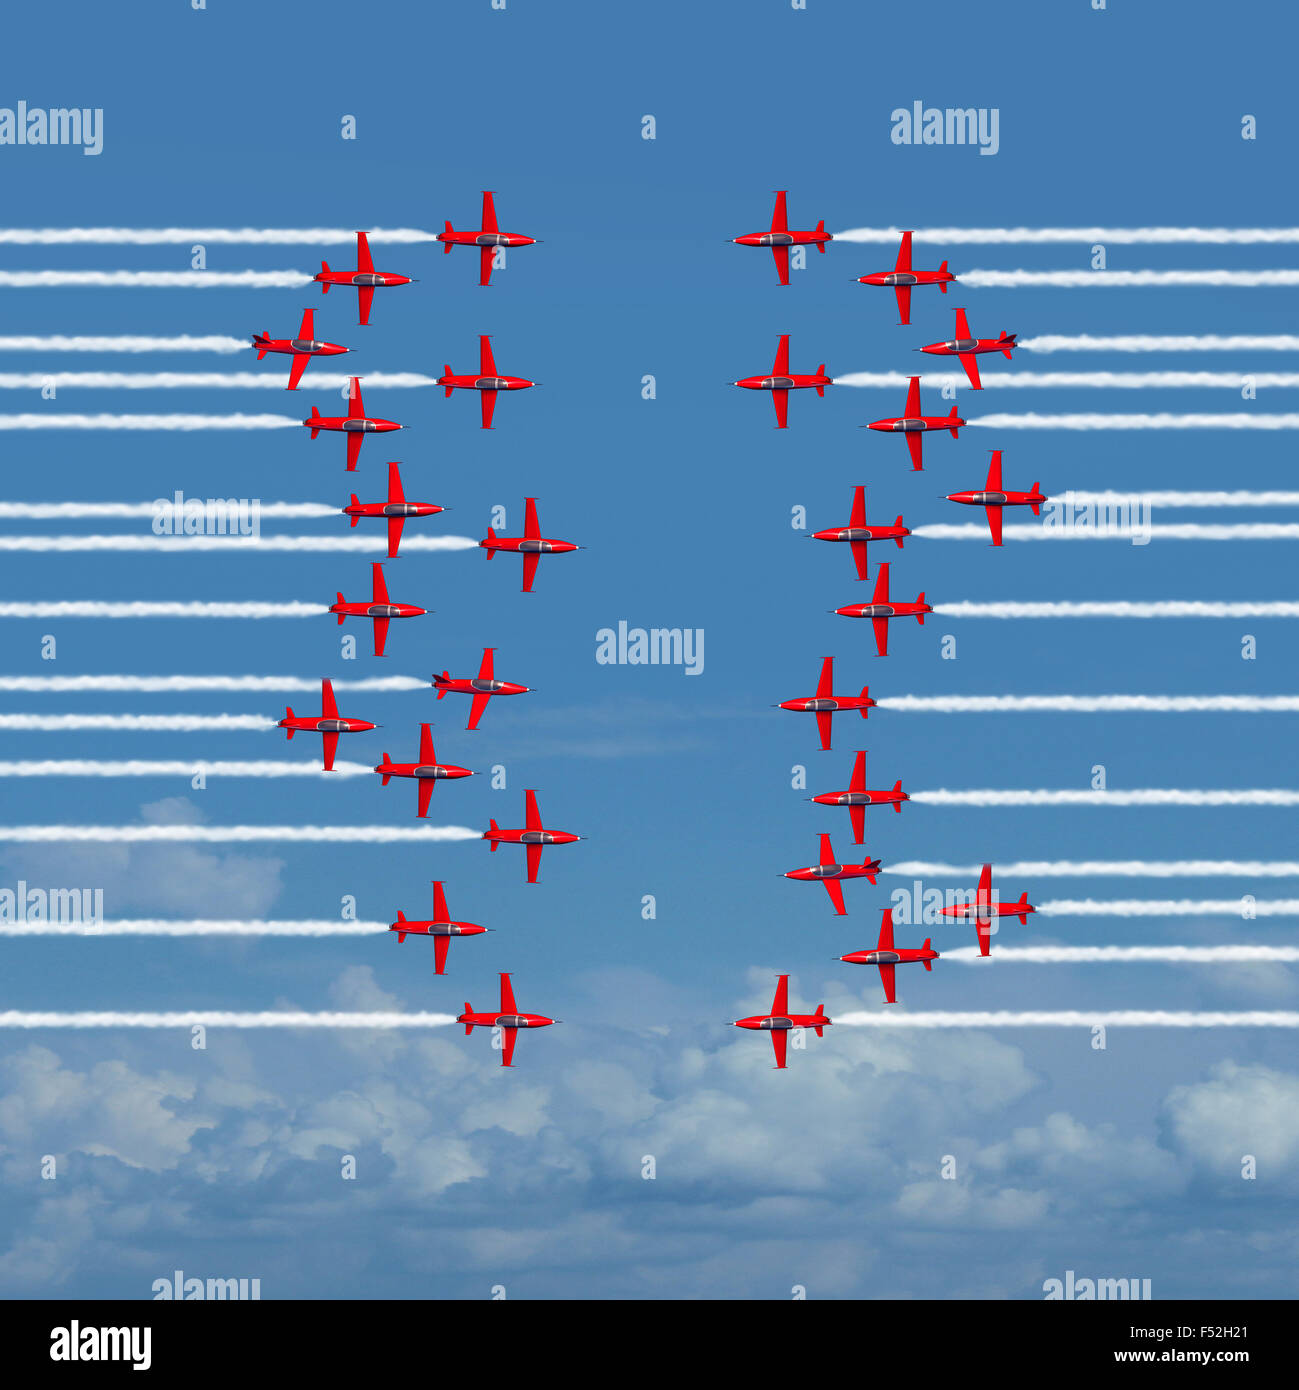 Destructive business strategy concept as two reckless groups of opposing airplanes or acrobatic jets facing off - Stock Image